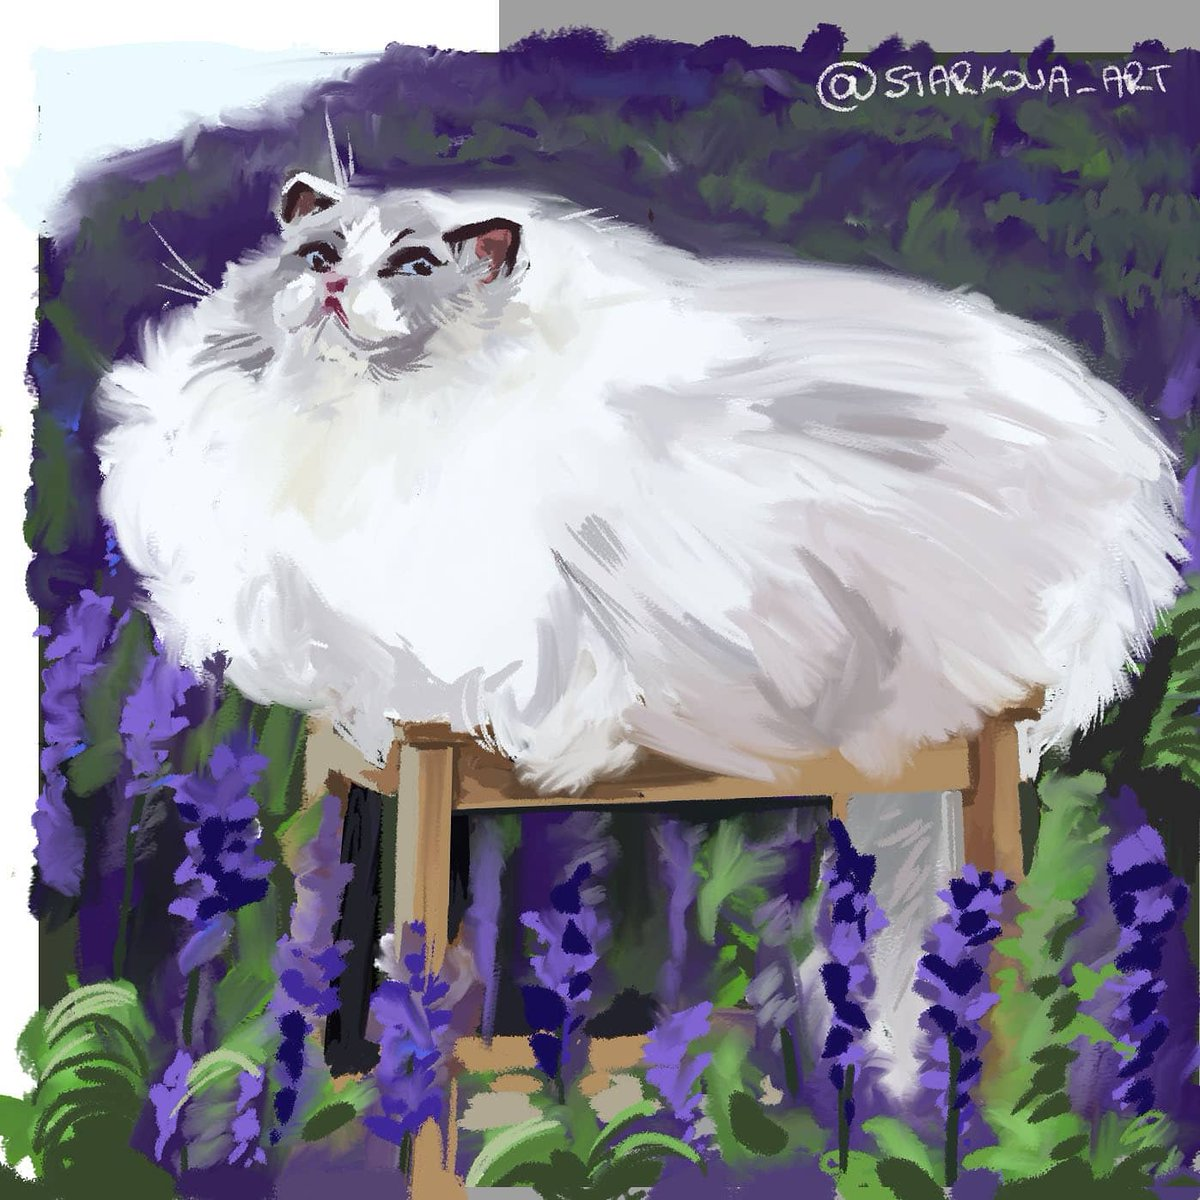 I am doing studies of cats, the first one is @sweetheartragdo because oh god, I am in love. The second is a stock image, that I cant find the source for but the lighting is gorgeous. Here is how we keep sane in these trying times. https://t.co/cZ5EYGV50N